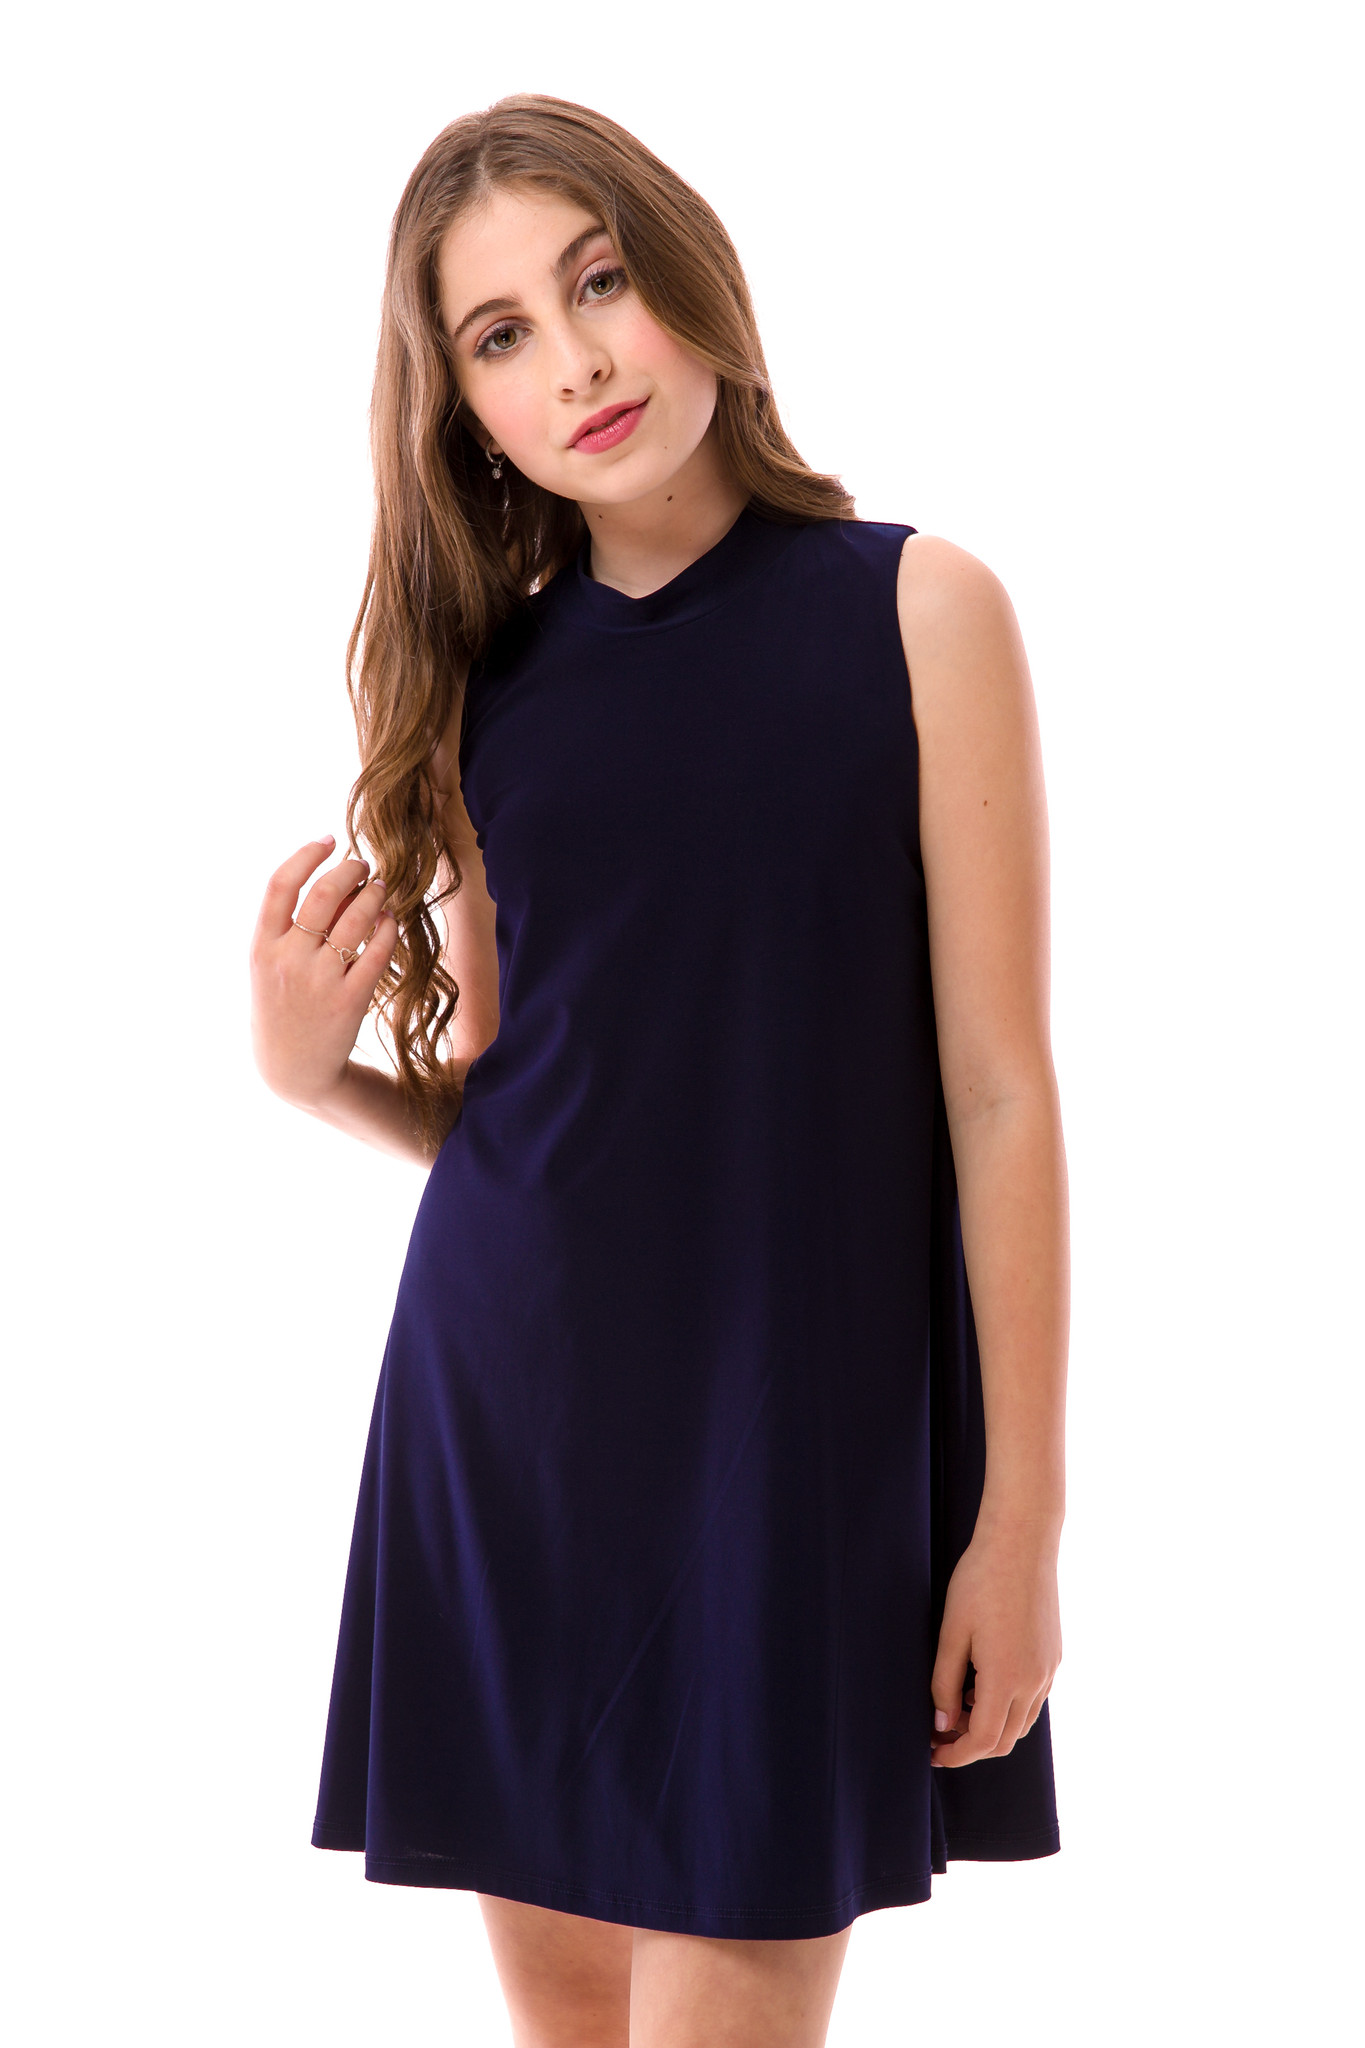 A close up shot of the Tween Girls High Neck Navy A Line Dress now on sale.